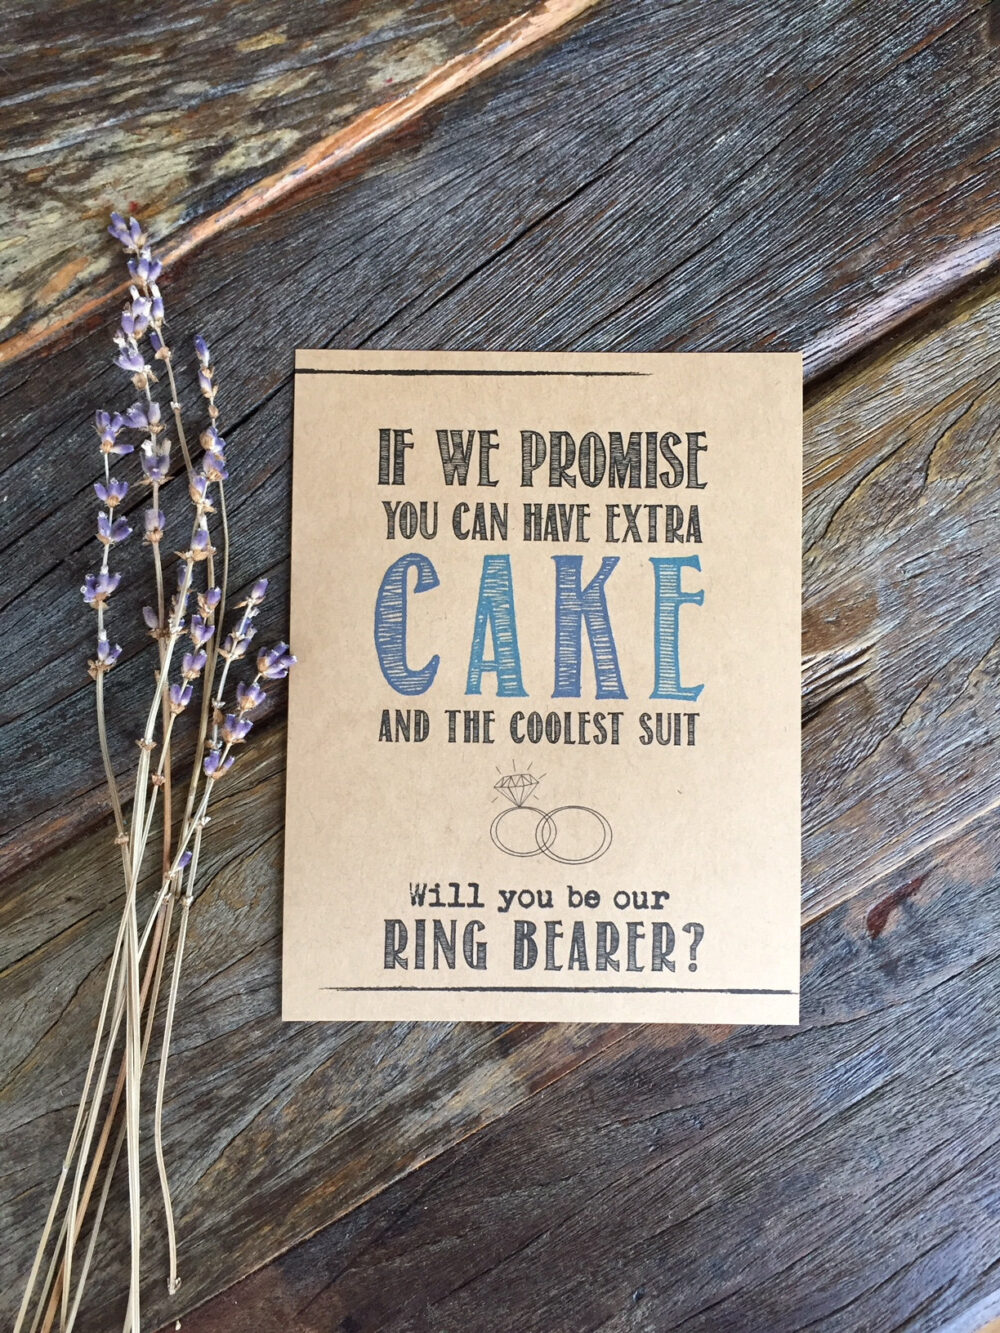 Ring Bearer Proposal. Outfit. Invite. Ask Flower Girl, Bridesmaid. Gift Card